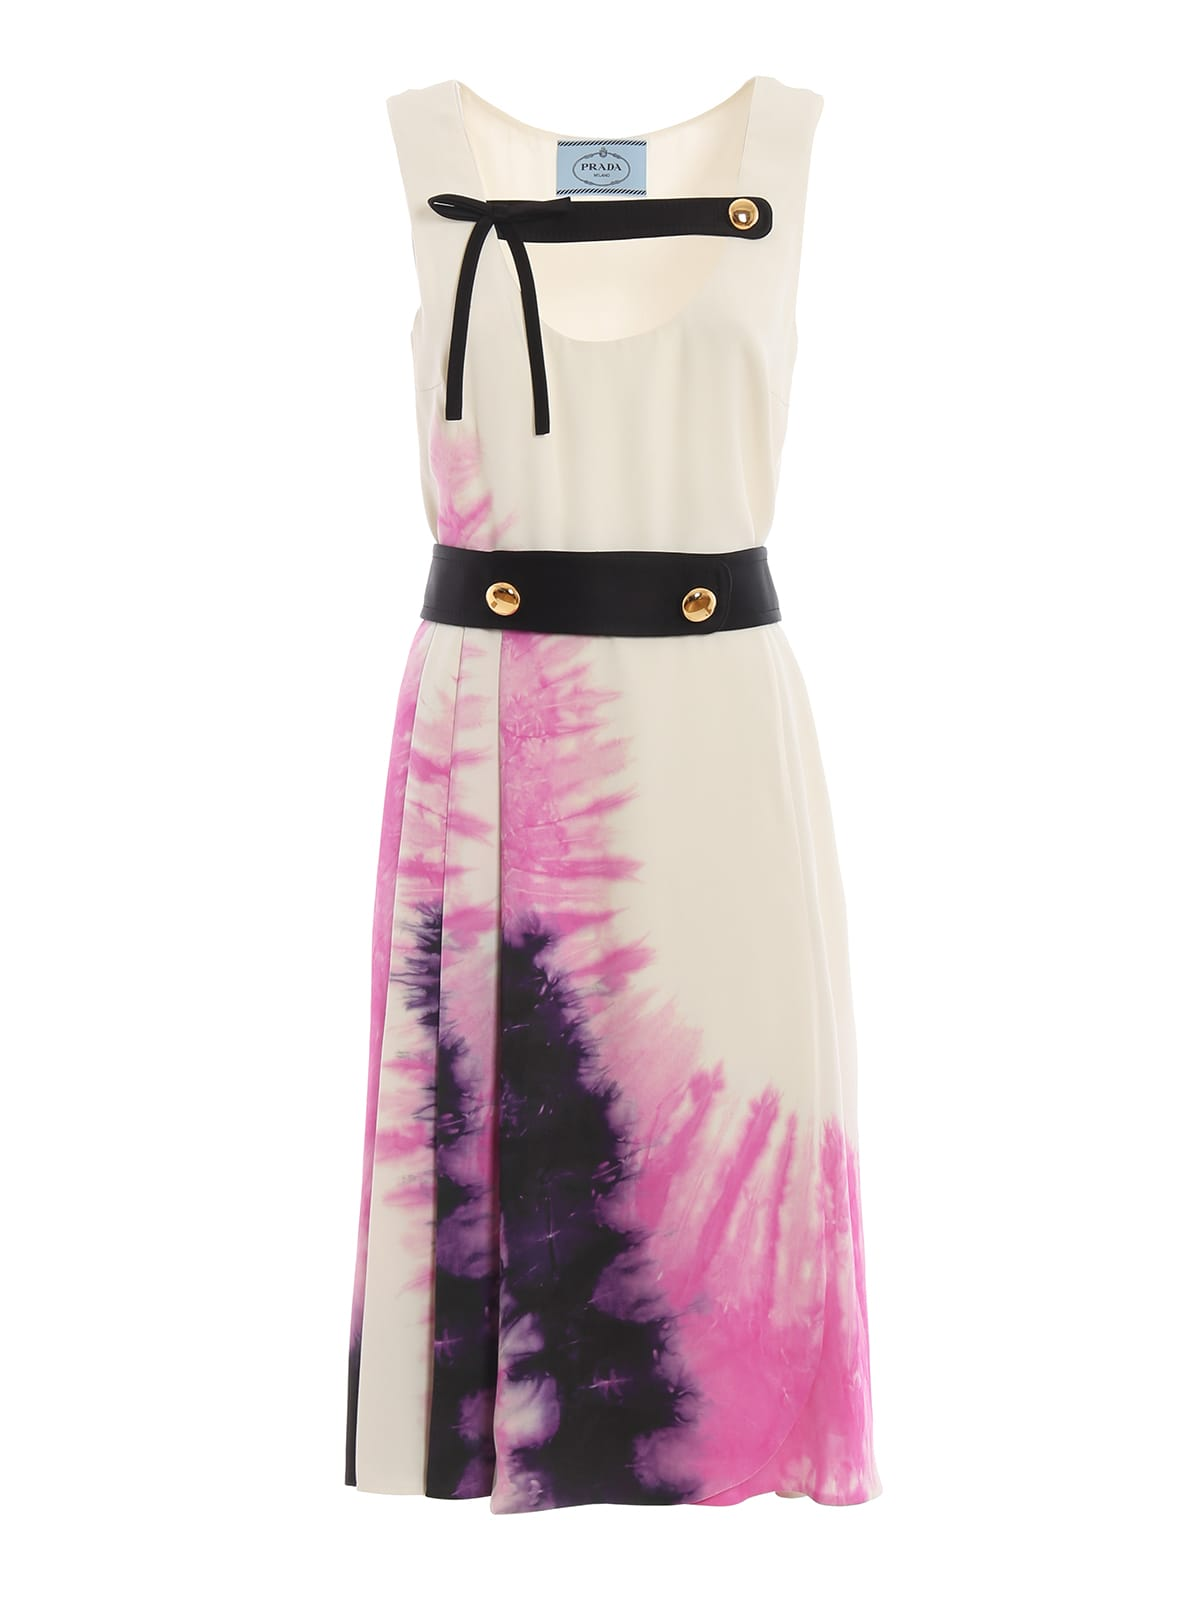 Prada Printed Dress